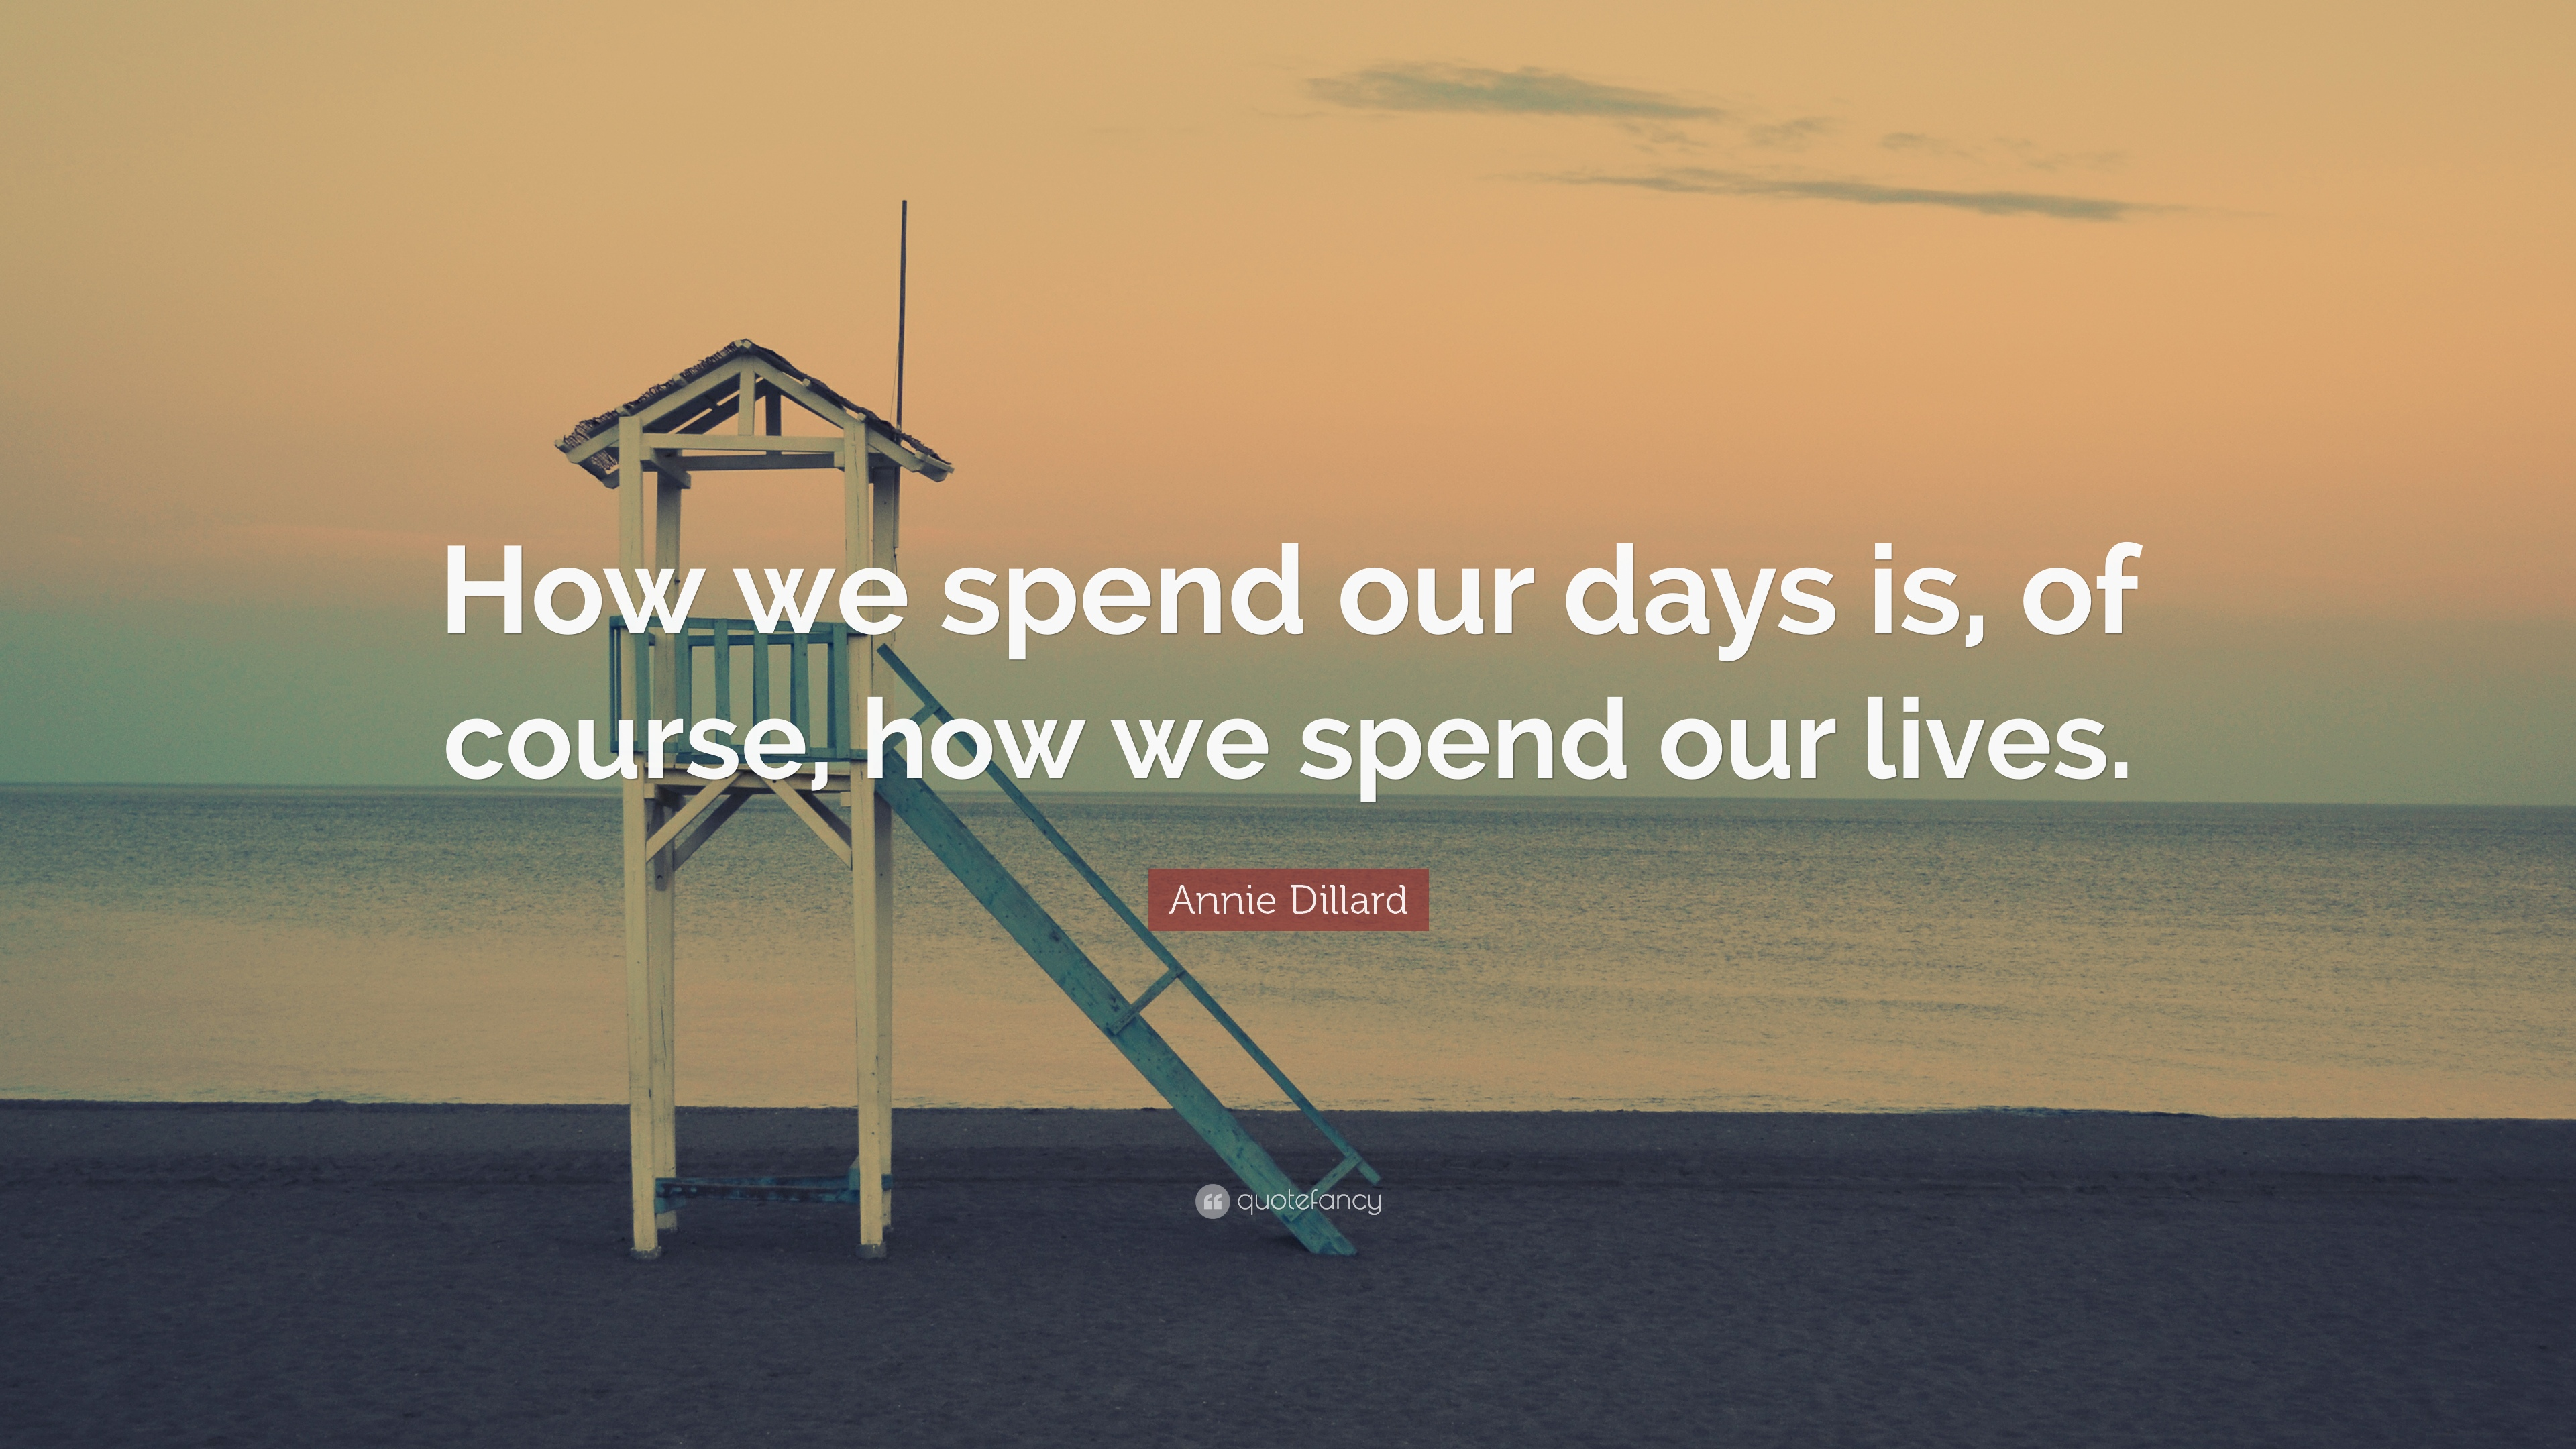 17121-annie-dillard-quote-how-we-spend-our-days-is-of-course-how-we